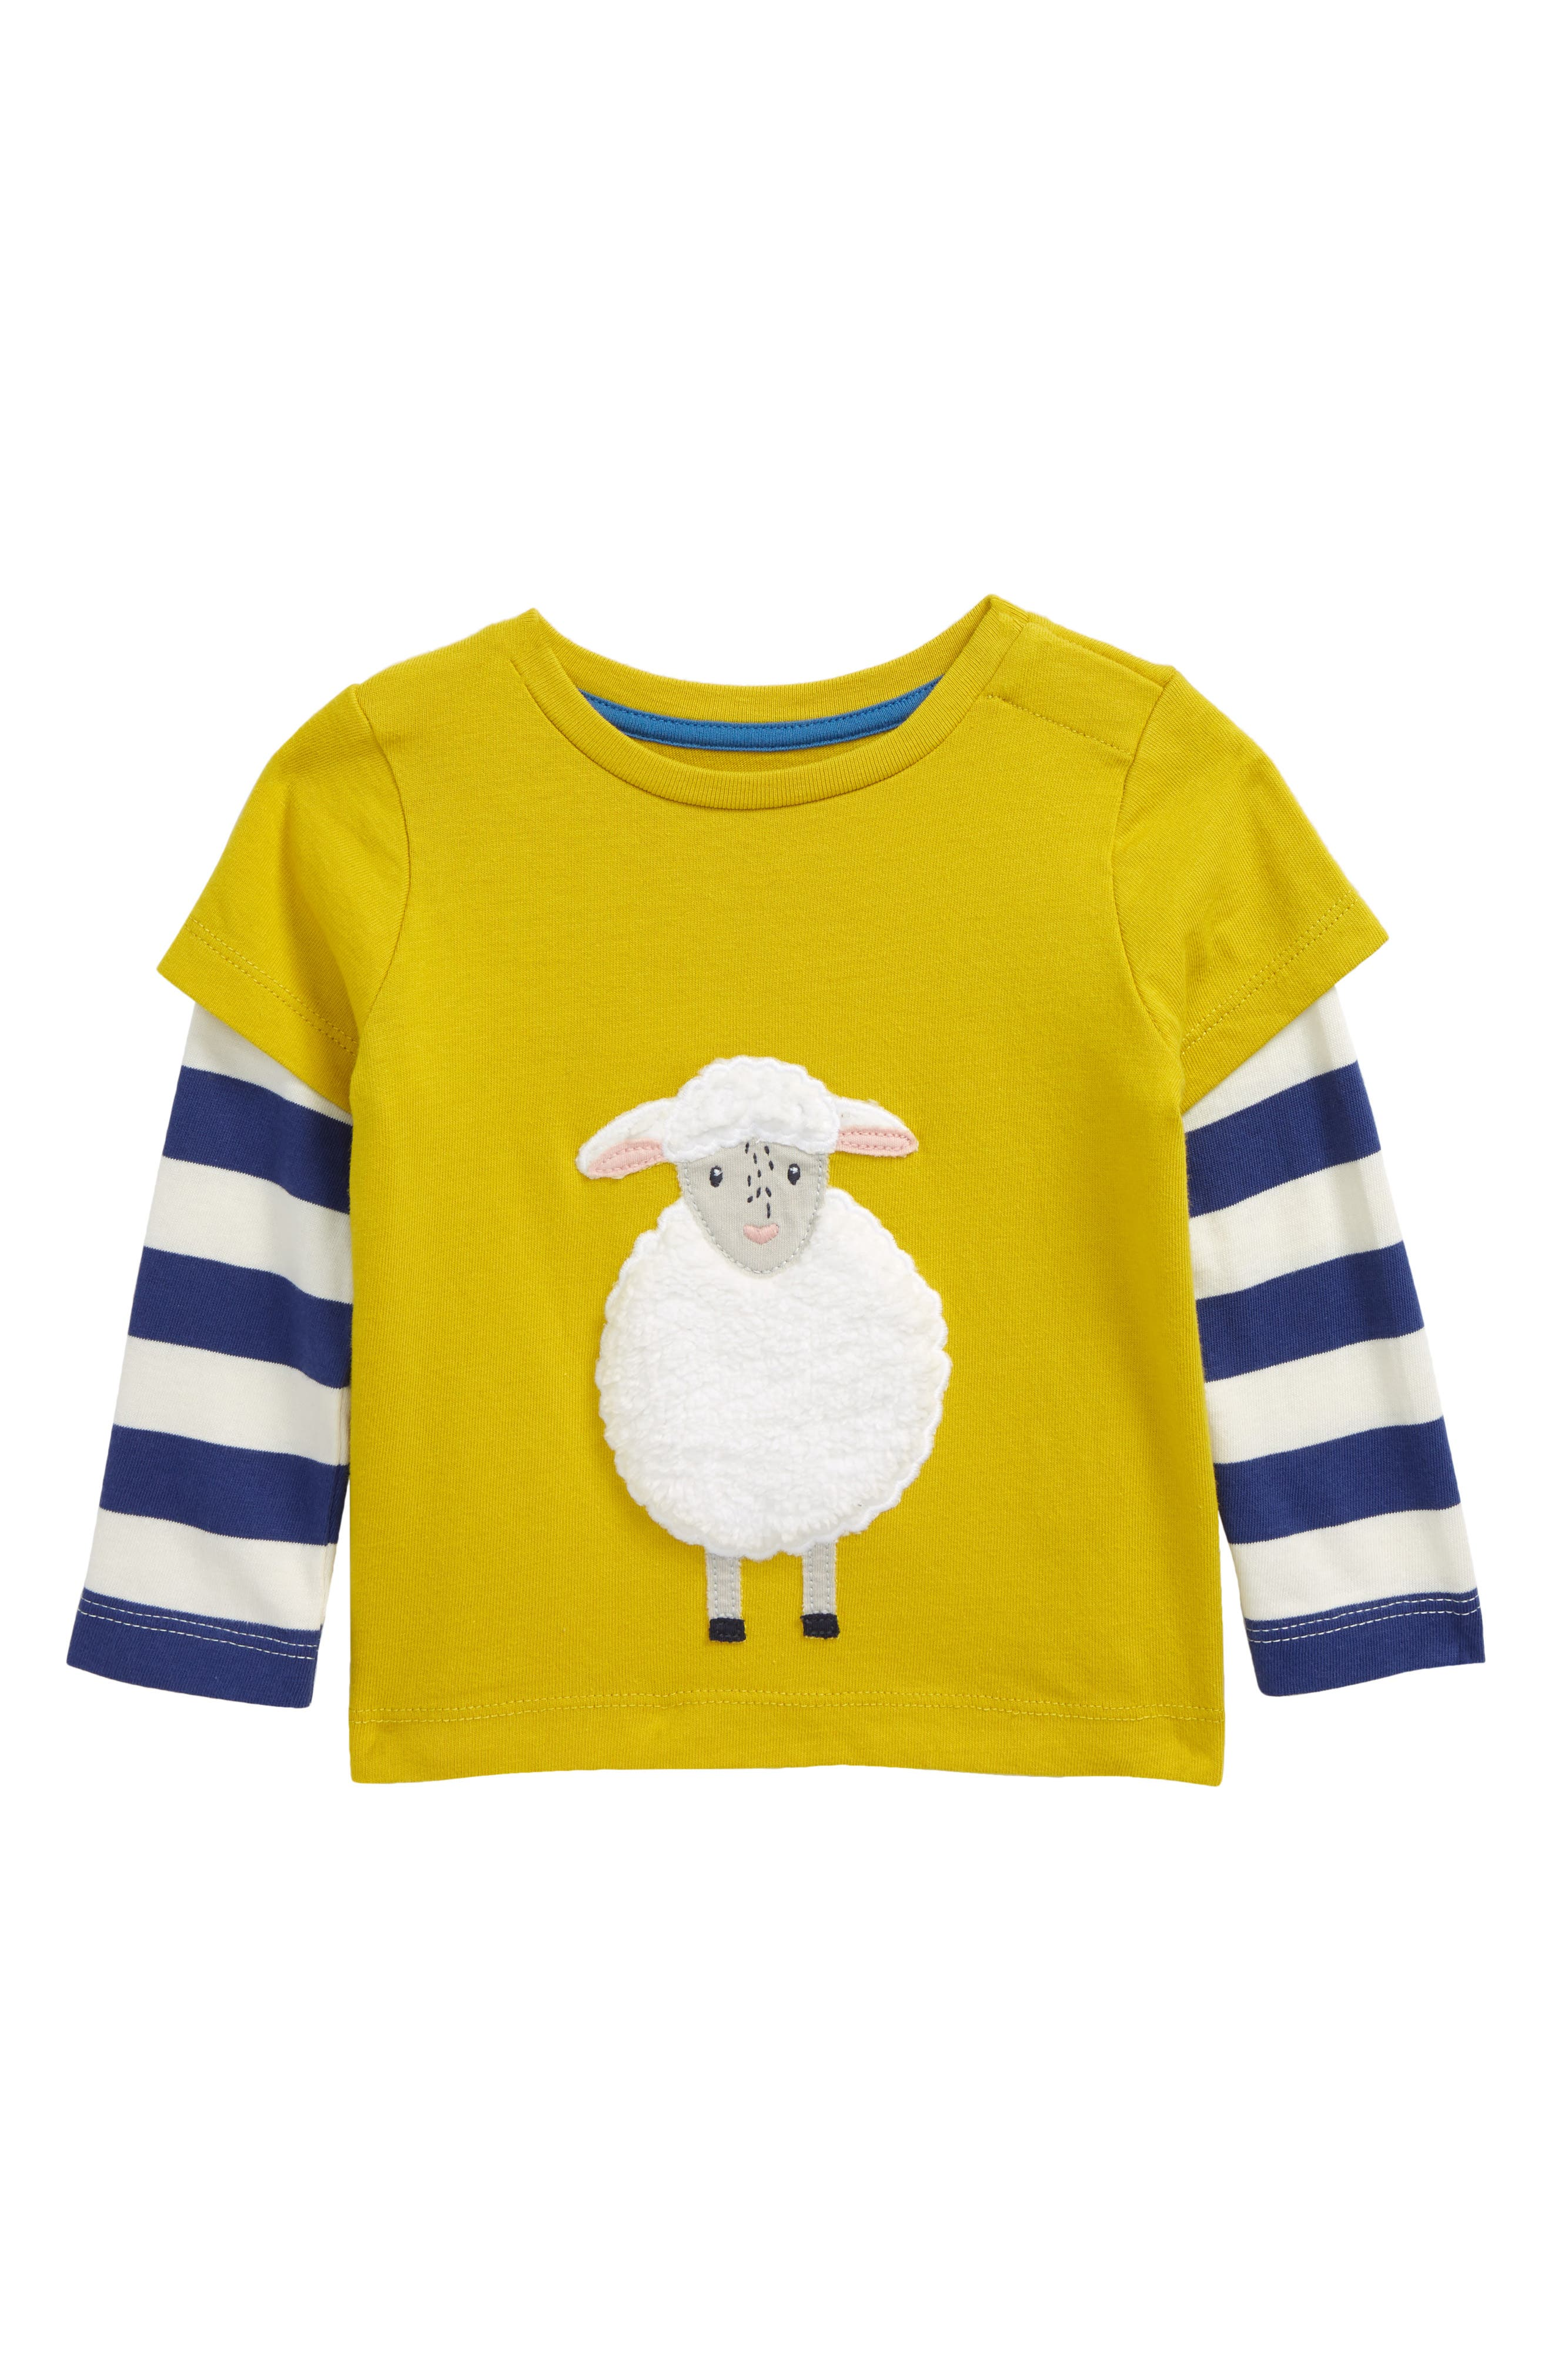 Your animal-loving little one will enjoy practicing cow or sheep sounds while wearing this comfy-cute T-shirt with layered long sleeves. Style Name: Mini Boden Farm Animal Layered Sleeve T-Shirt (Baby). Style Number: 6104869. Available in stores.